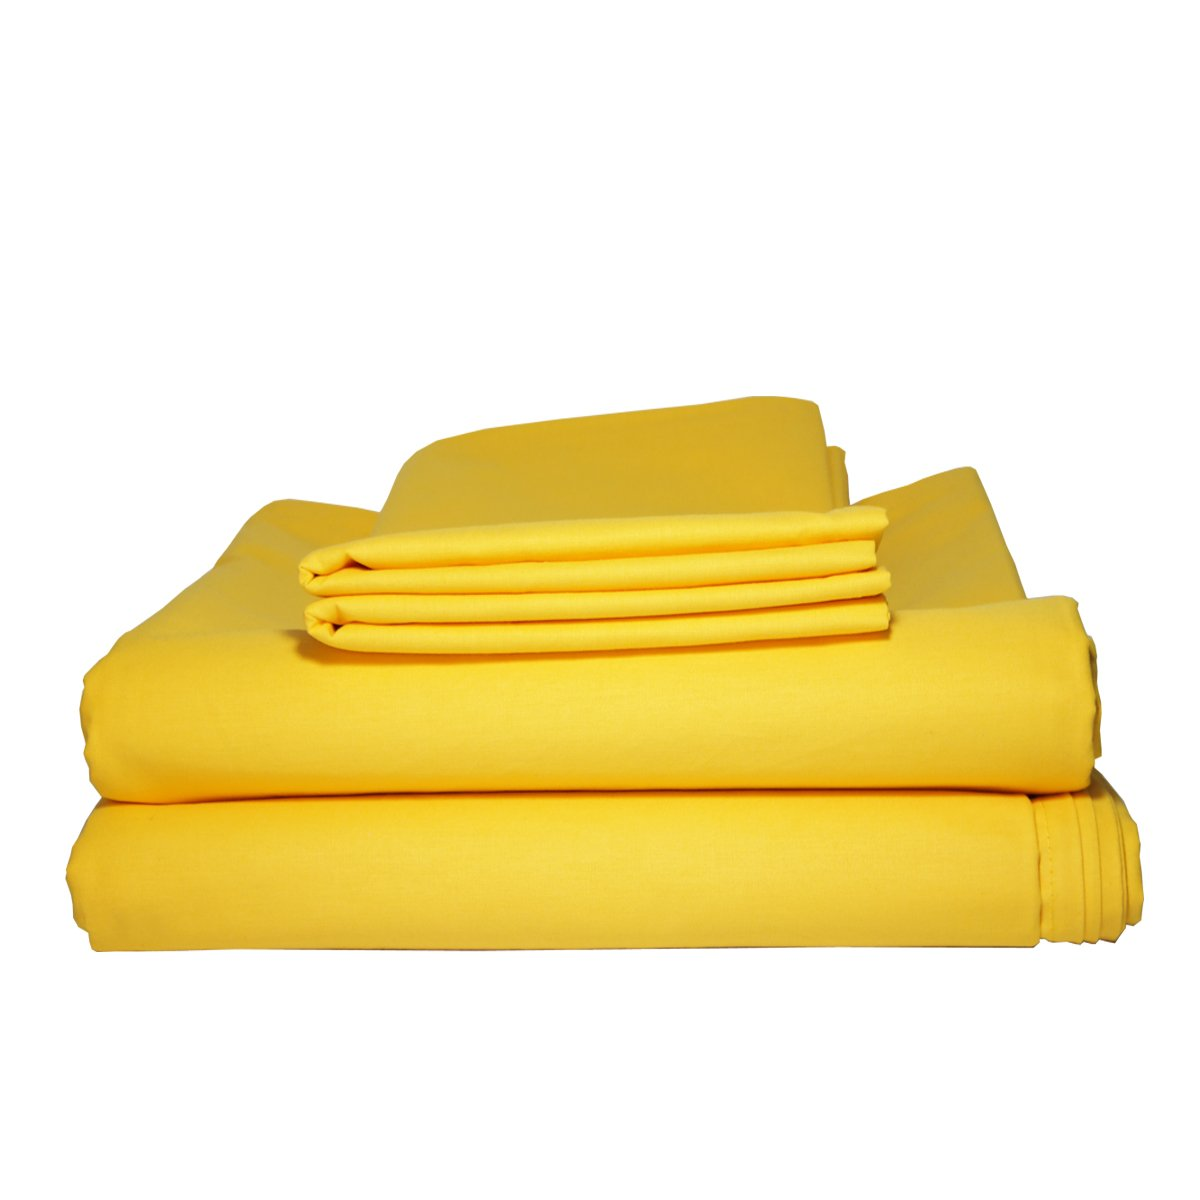 Bepoe 100% Cotton Bed Sheet Set Flat & Fitted Sheets with Pillowcases (Queen, Yellow)